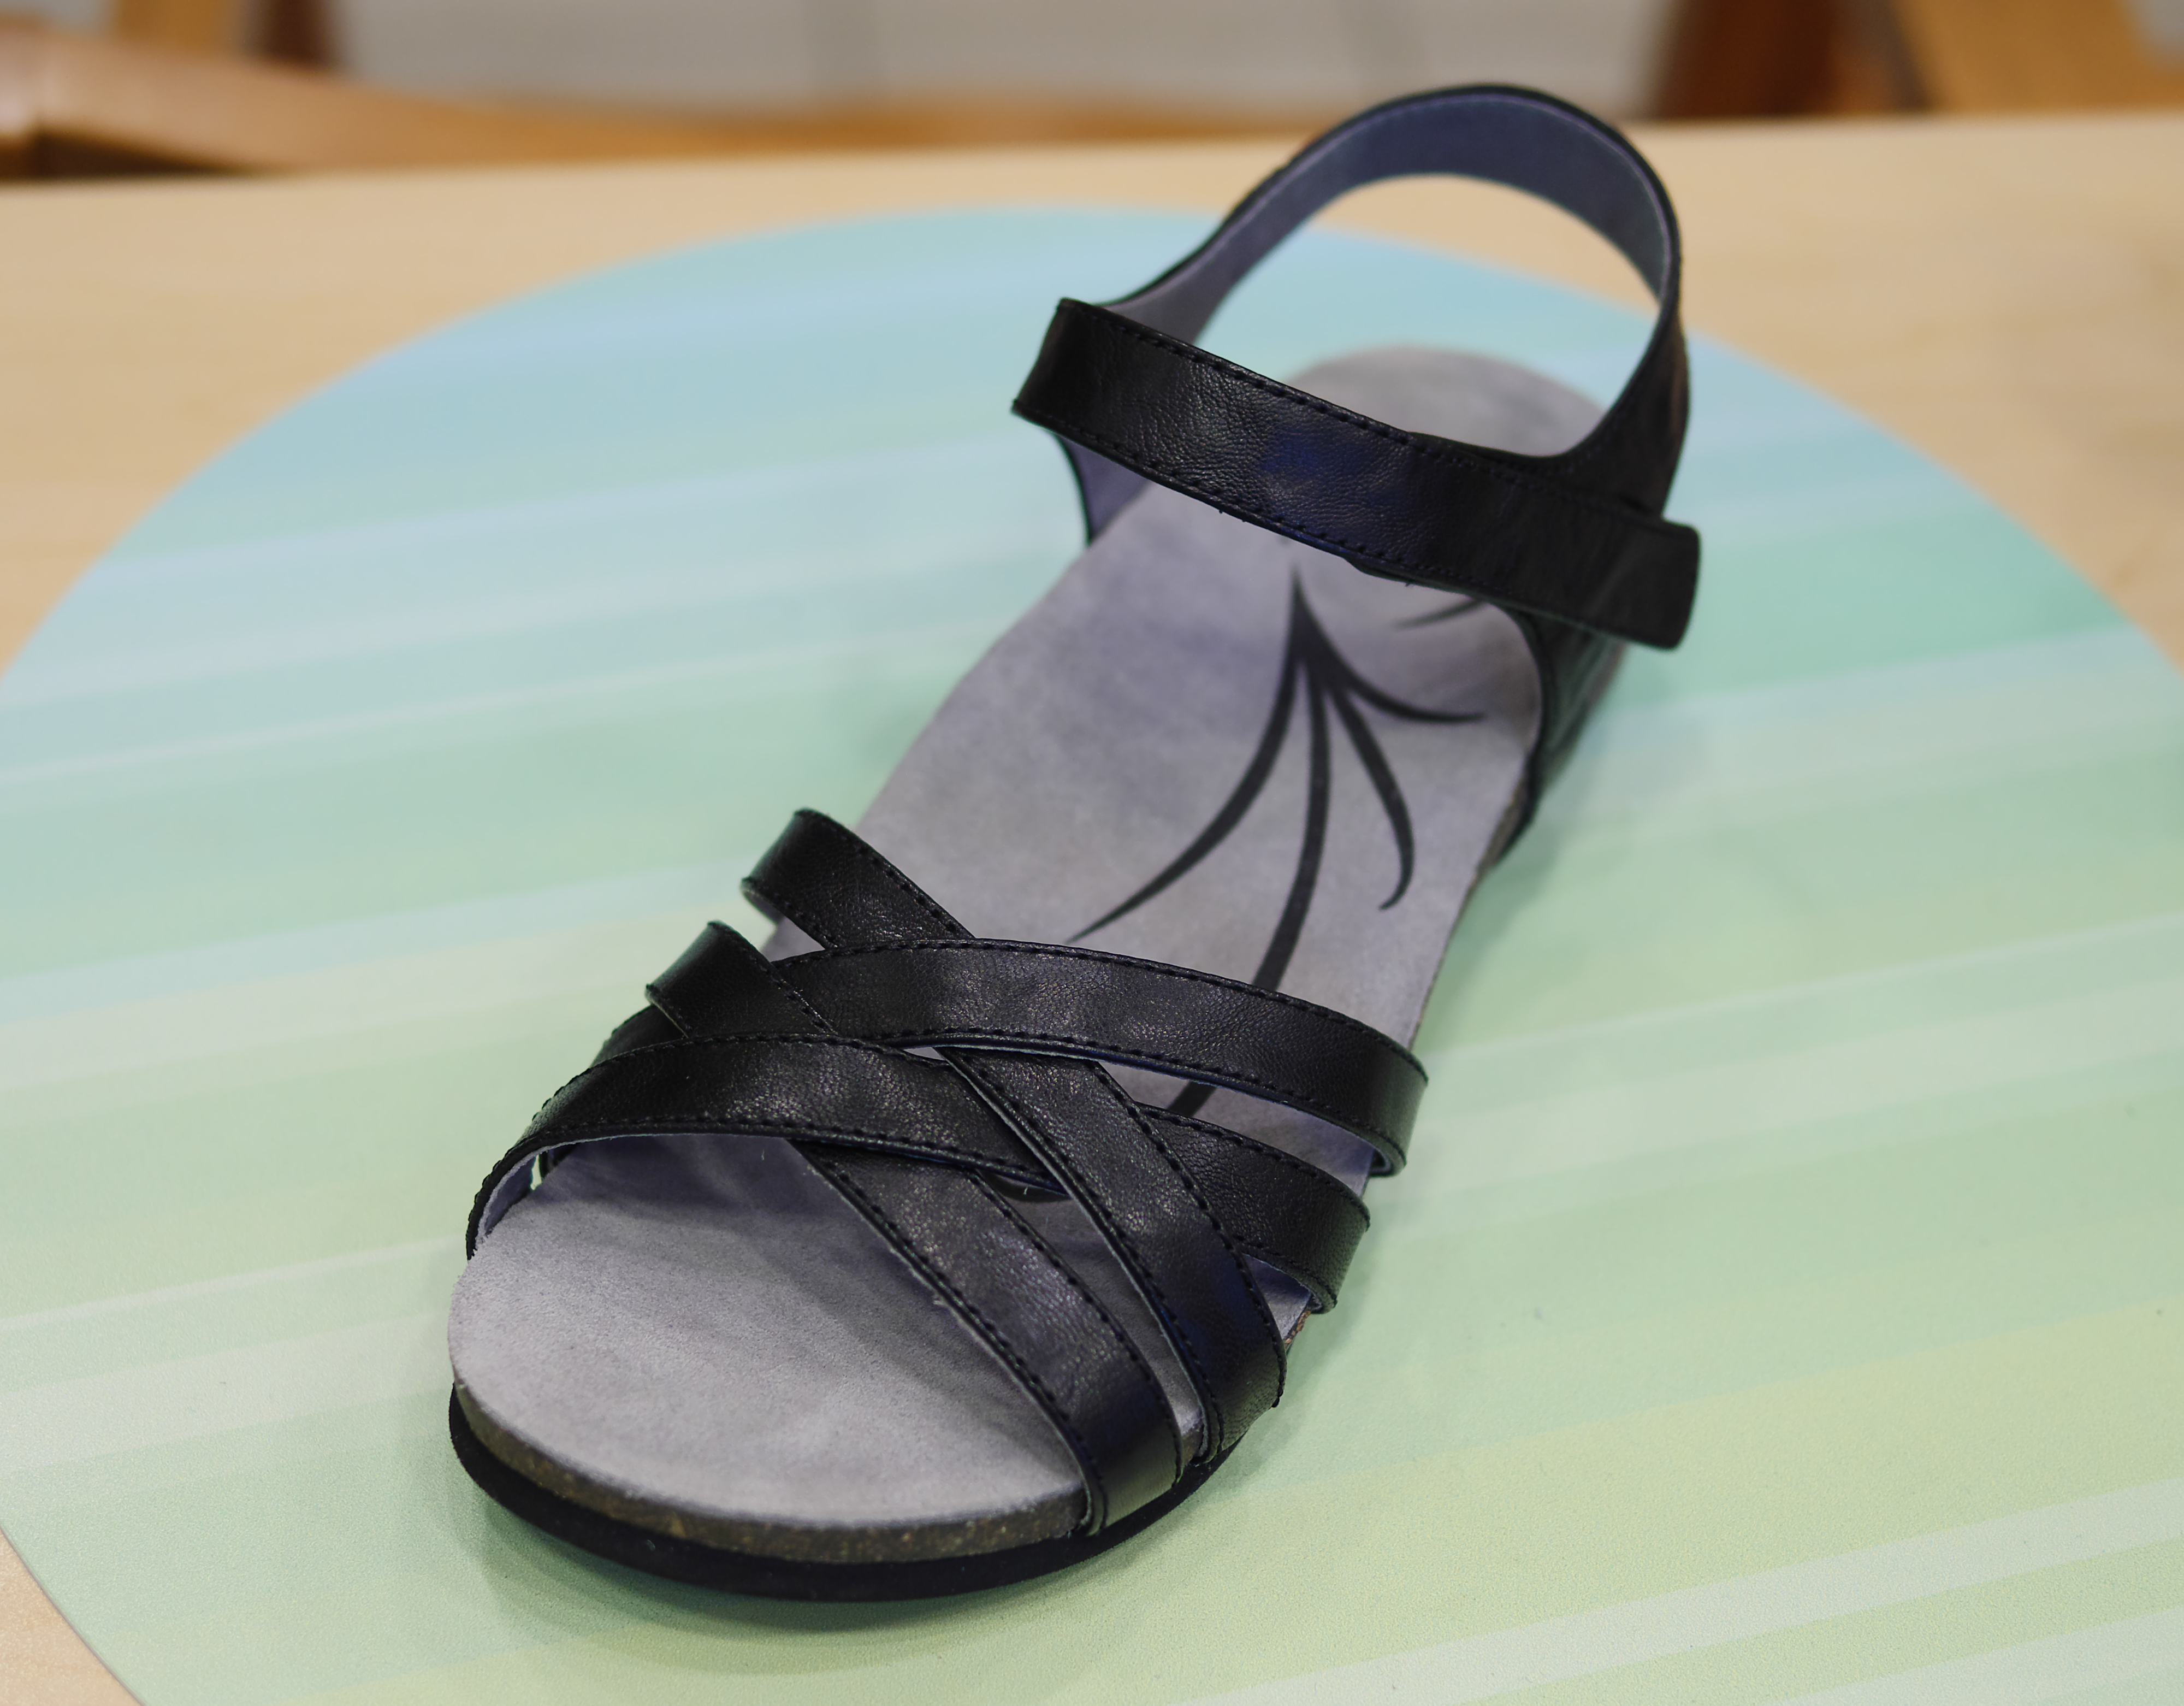 89a6ffa51f6 From abeo the bridgette sandals come in different arch supports as well as  in different jpg